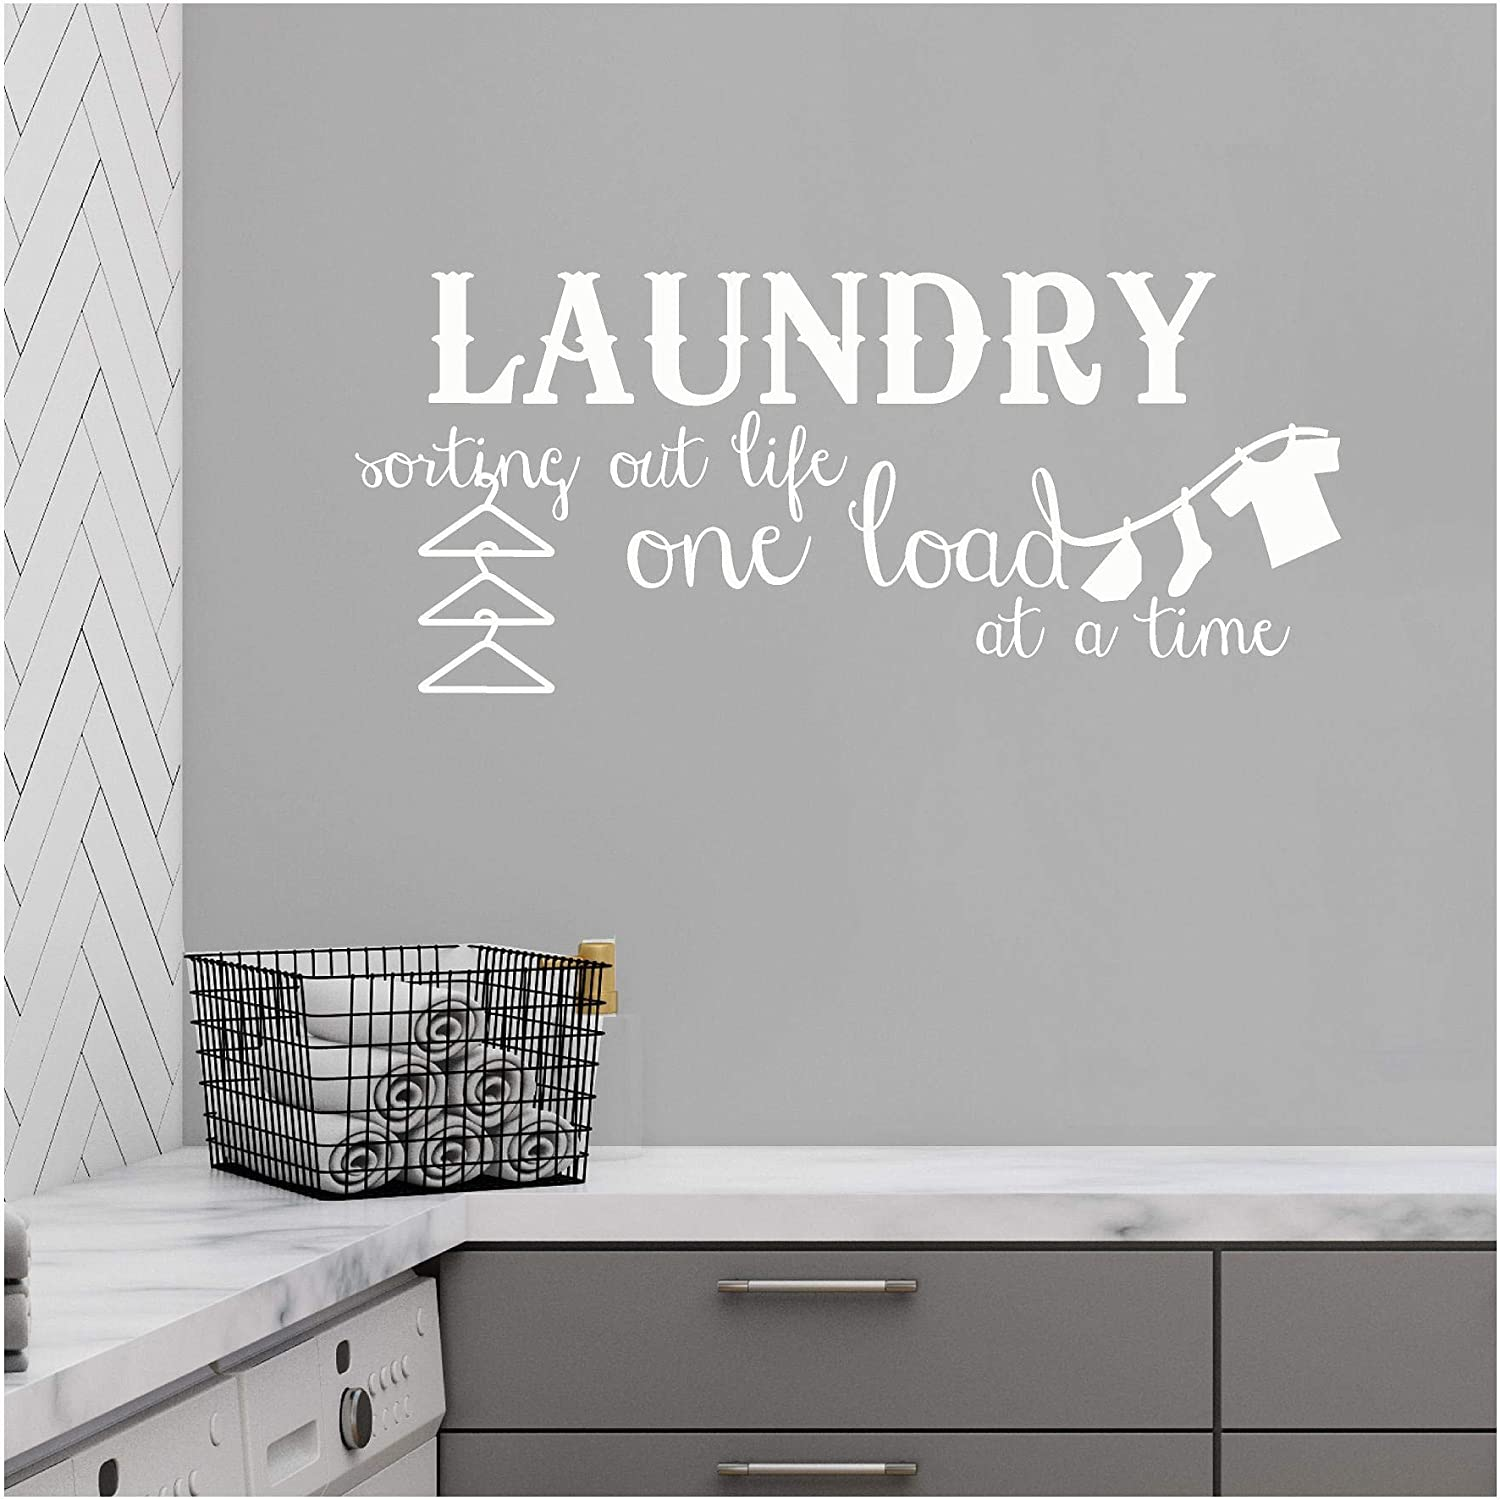 "Laundry Sorting Out Life One Load at a Time Vinyl Lettering Wall Decal Sticker (12.5""H x 30""L, White)"